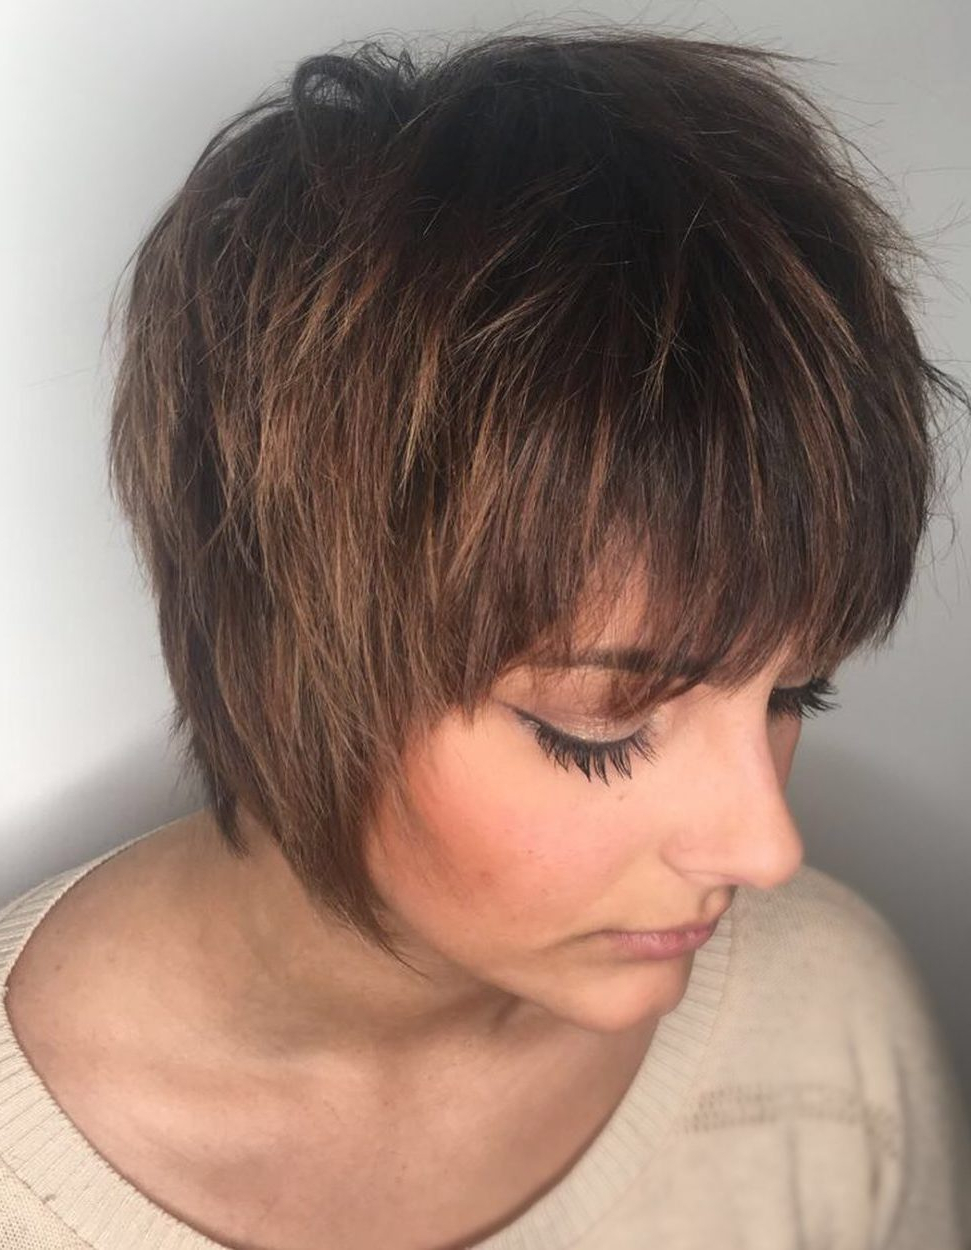 Top 25 Short Shag Haircuts Right Now – Short Bob Cuts Intended For Short Shag Bob Haircuts (View 2 of 20)